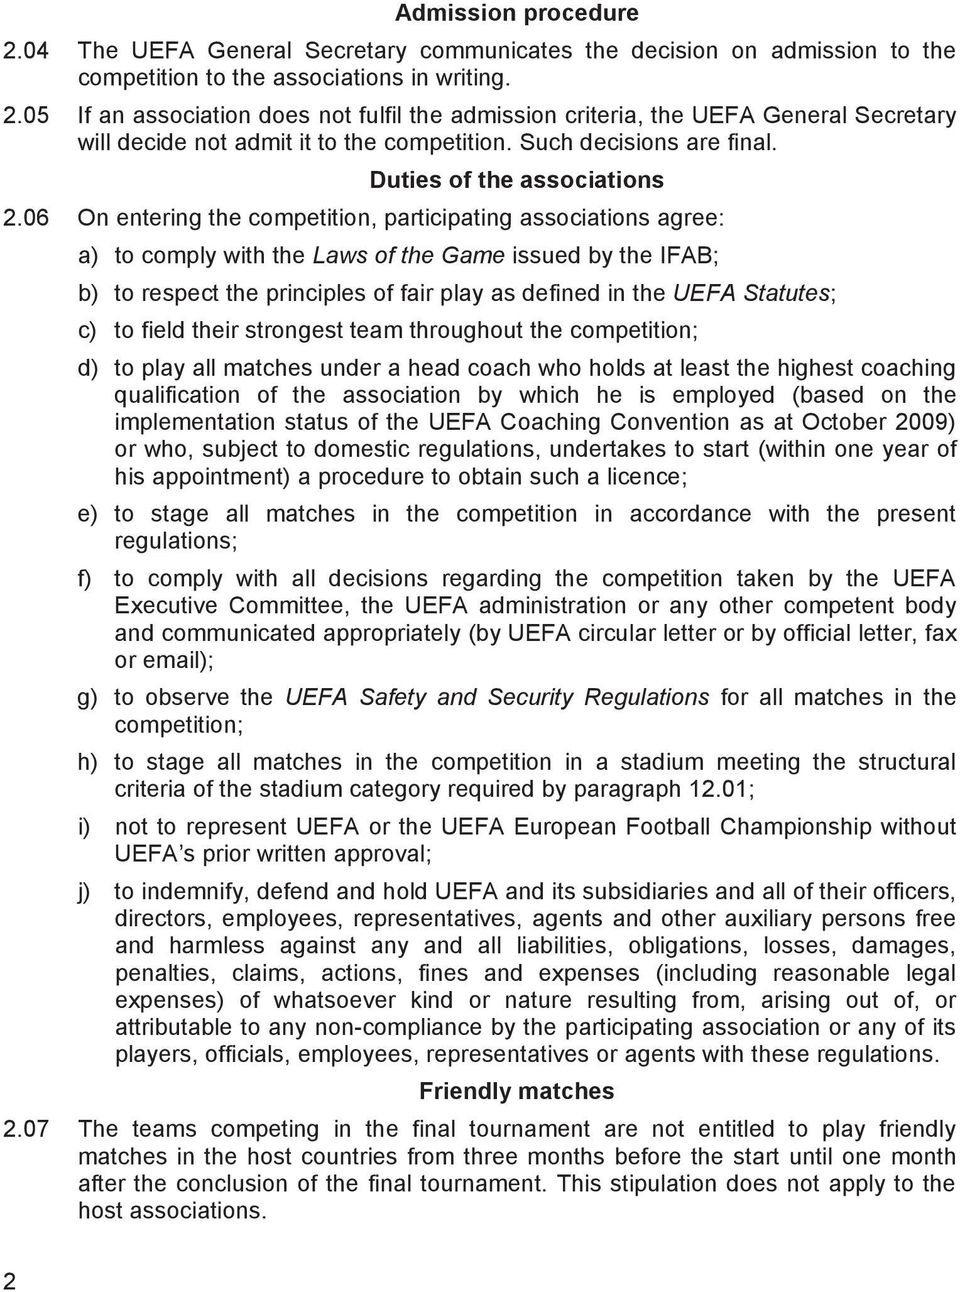 06 On entering the competition, participating associations agree: a) to comply with the Laws of the Game issued by the IFAB; b) to respect the principles of fair play as defined in the UEFA Statutes;